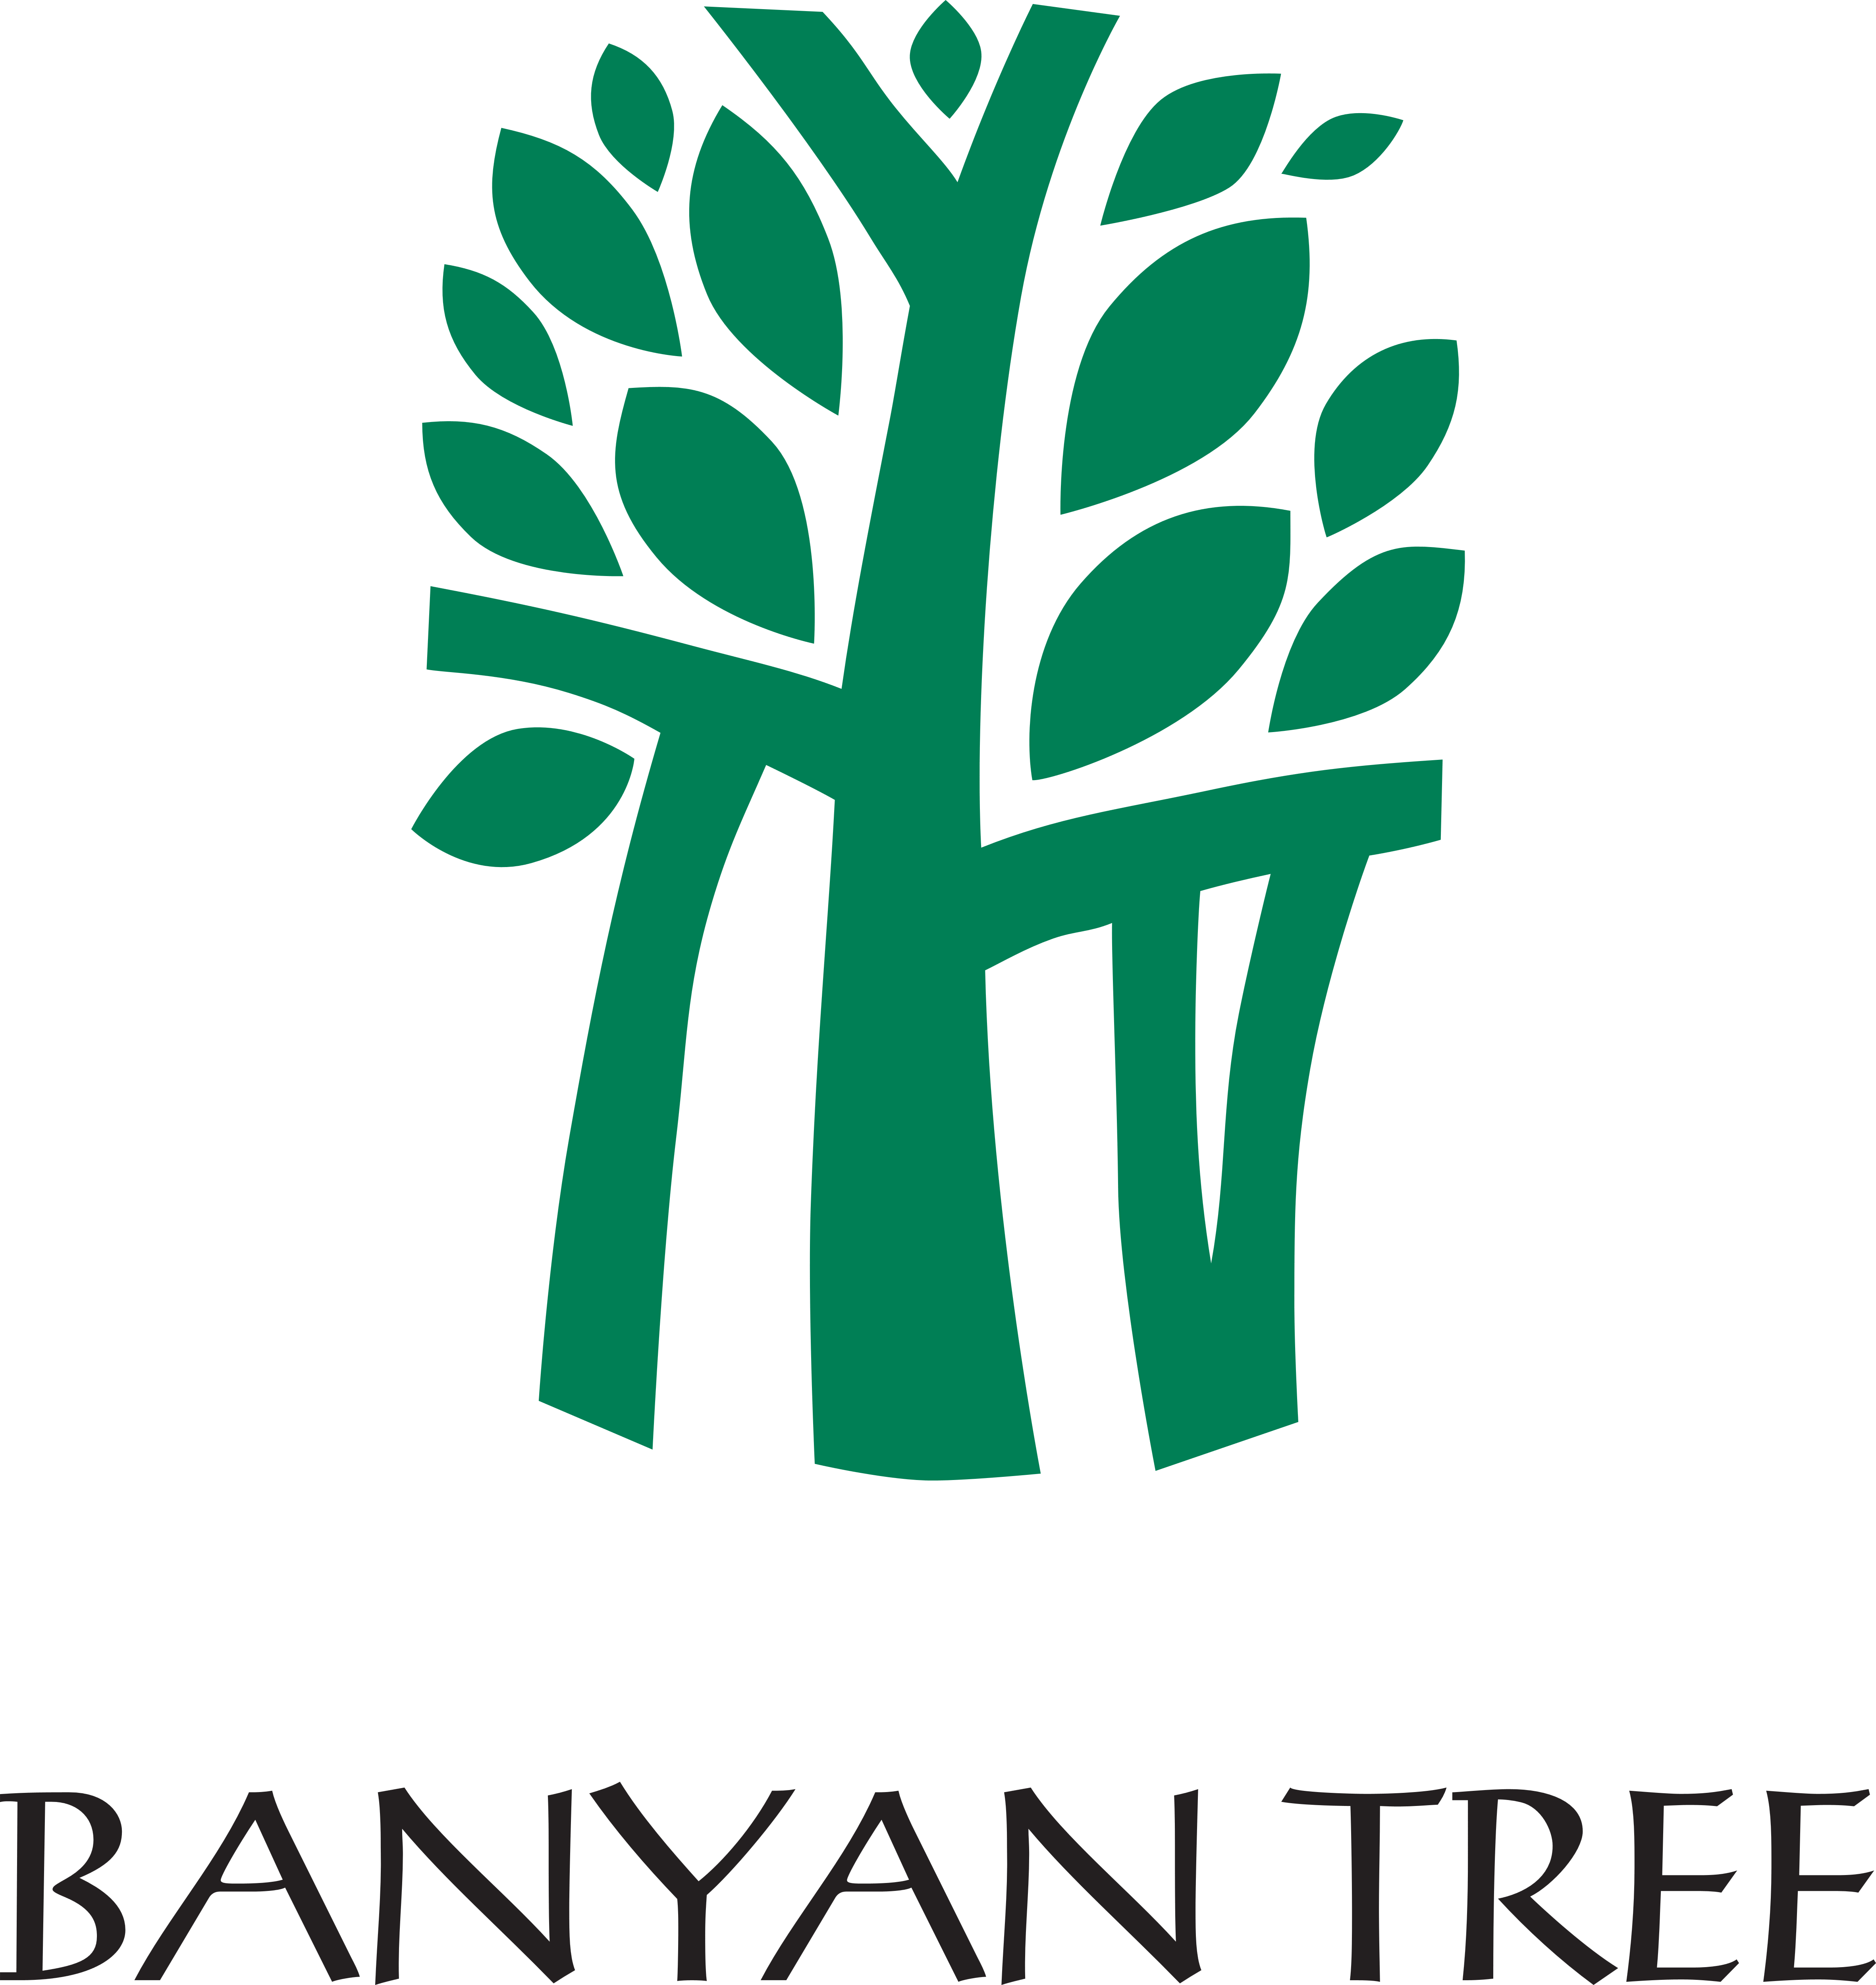 Banyan tree clipart clip black and white stock Images of Banyan Tree Logo - #SpaceHero clip black and white stock